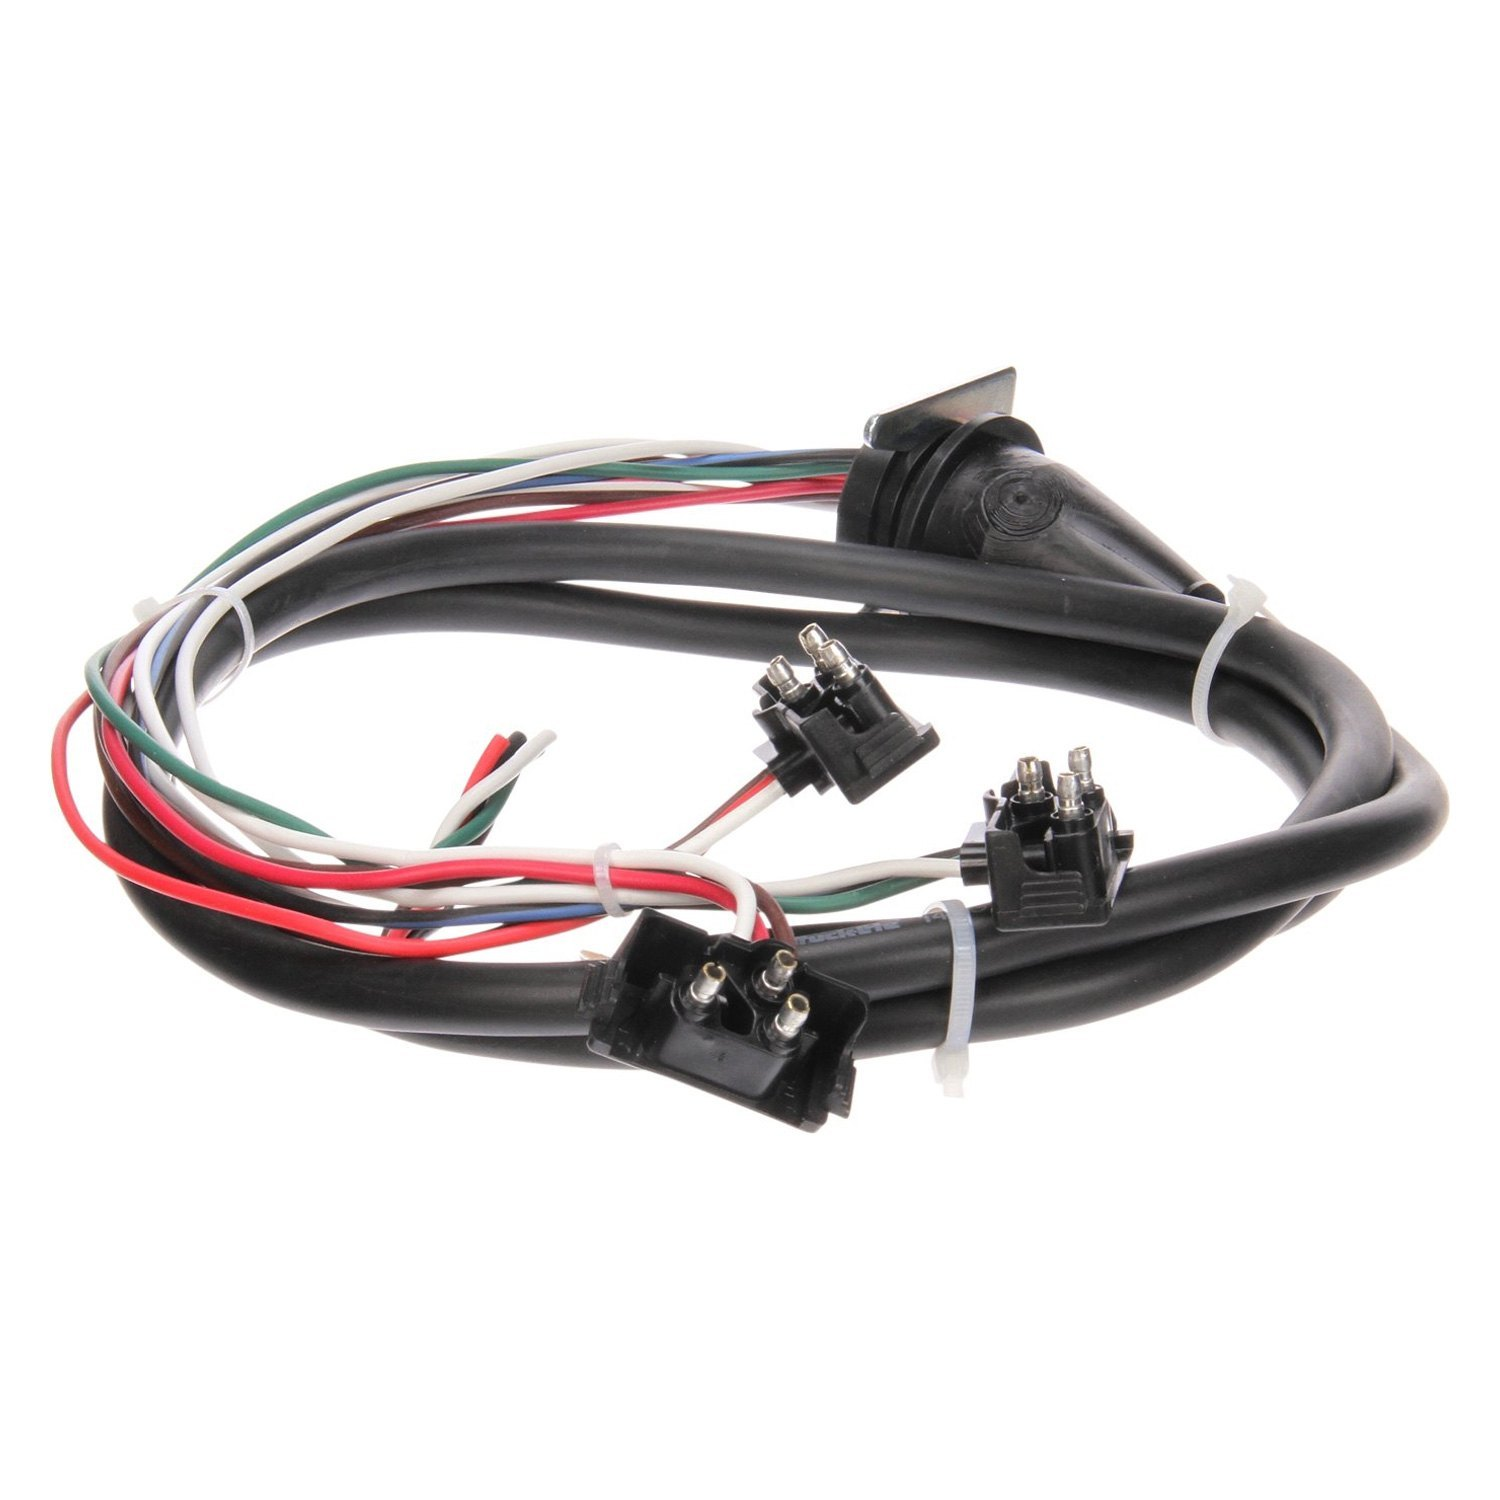 hight resolution of truck lite 50 series 3 plug stop turn tail and back up wiring truck light wiring harness truck lite wiring harness